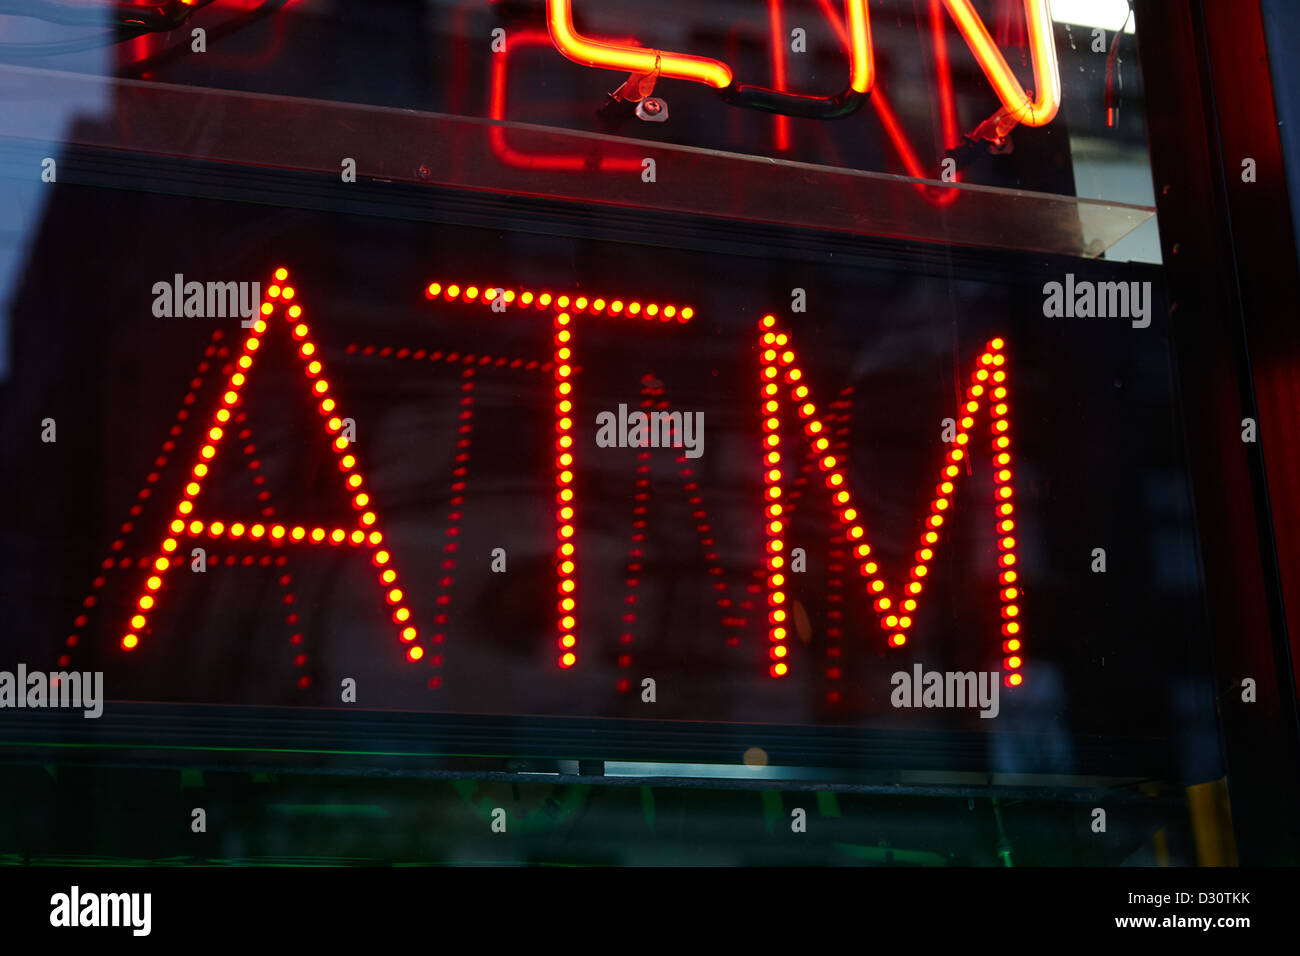 red led atm sign in the window of a store Vancouver BC Canada - Stock Image